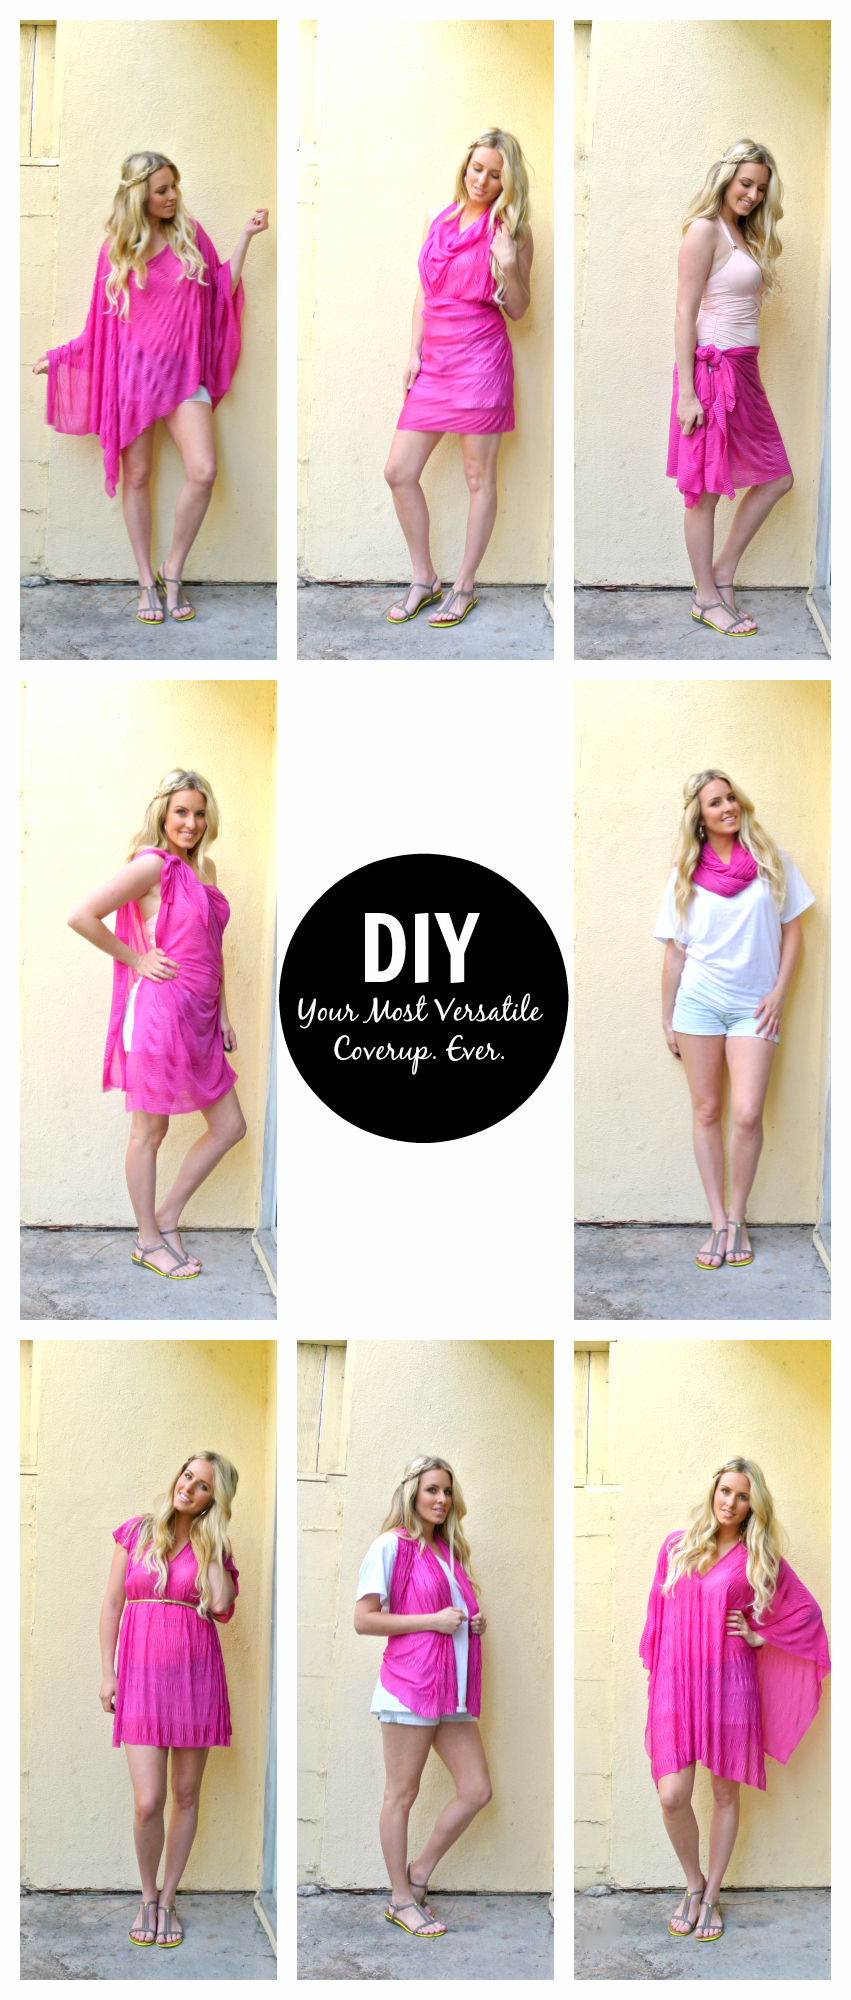 DIY Scarf Beach Cover Up Tutorial